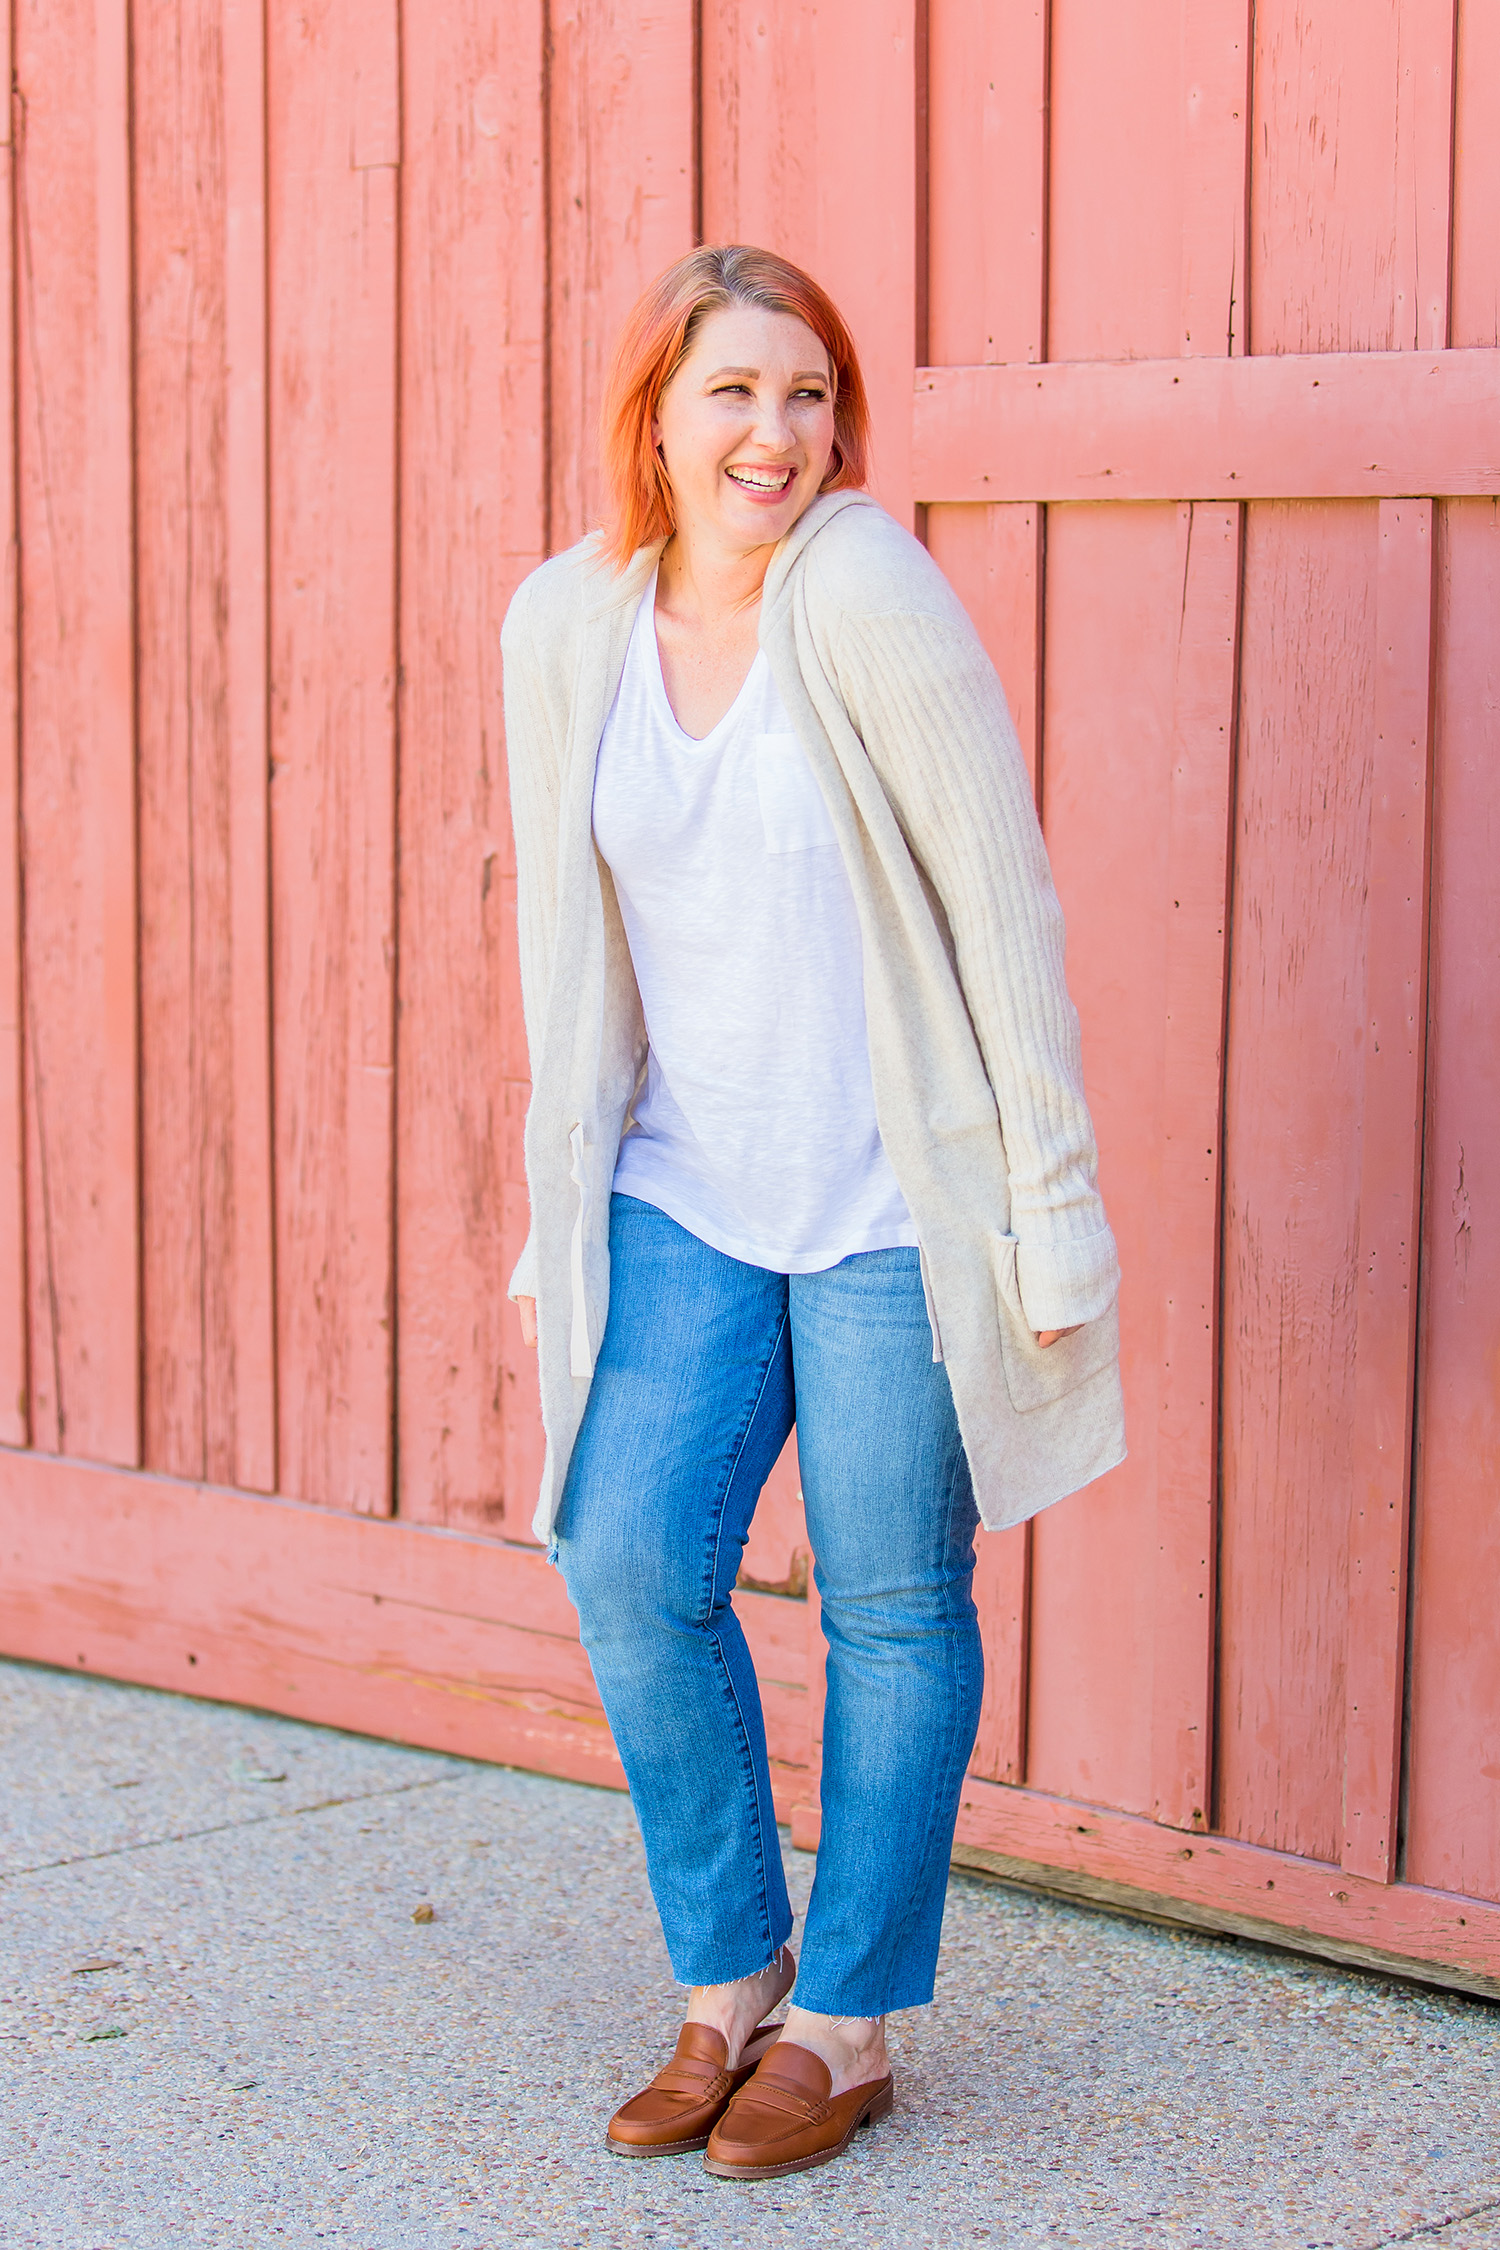 Fall Outfits: Looking for great staple pieces for a pear shaped body? These straight leg jeans fit like a dream!